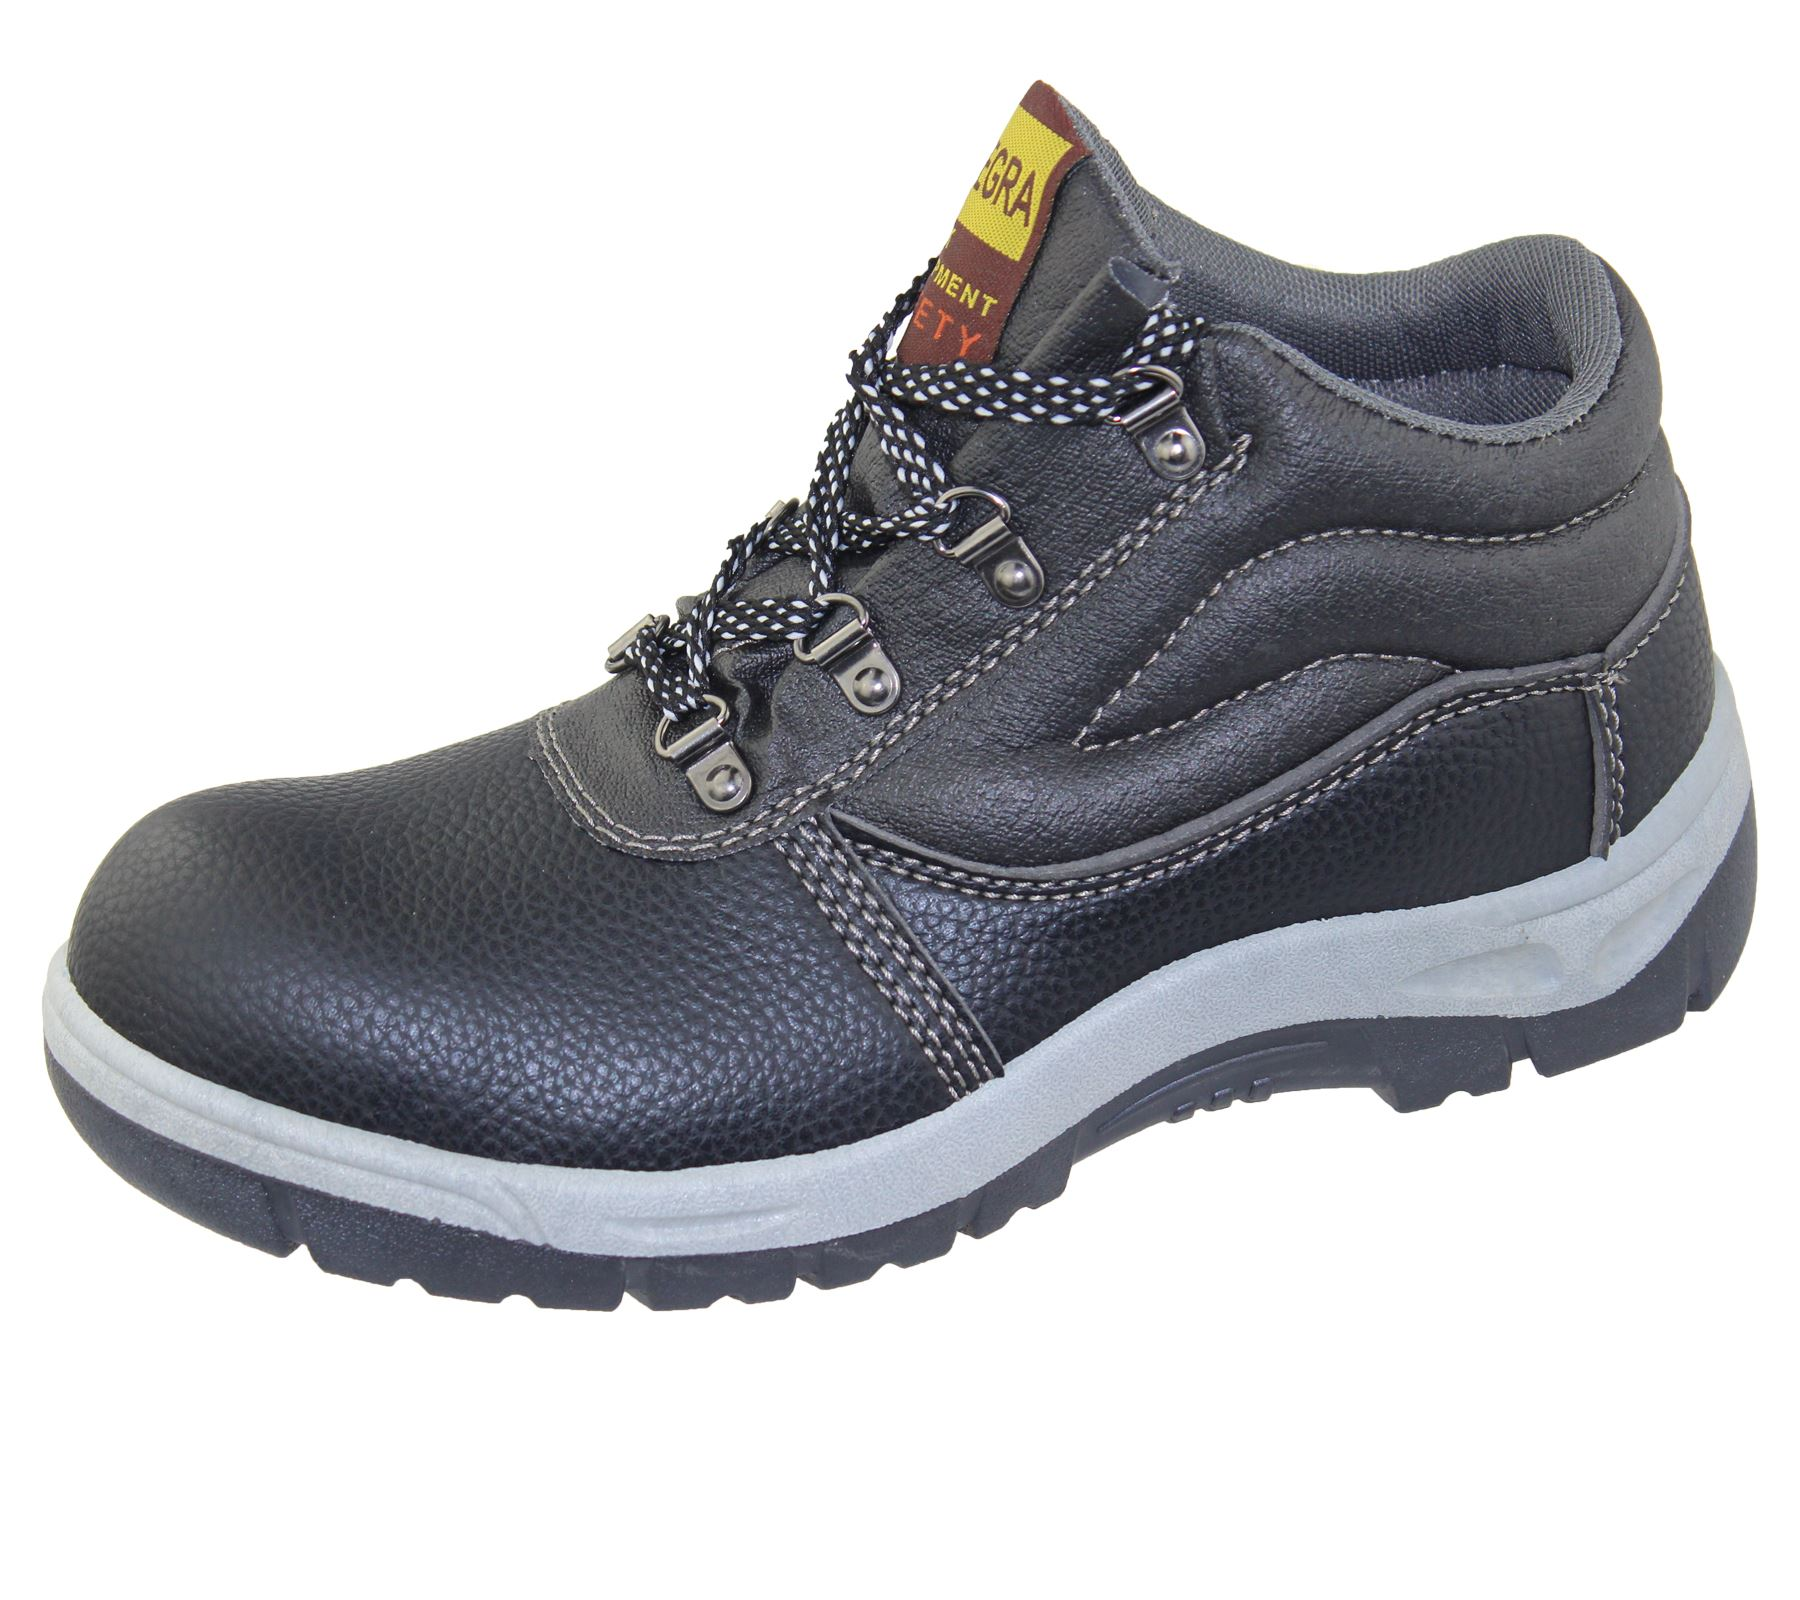 Mens Steel Toe Cap Work Boots Winter Combat Hiking High ...- photo #50